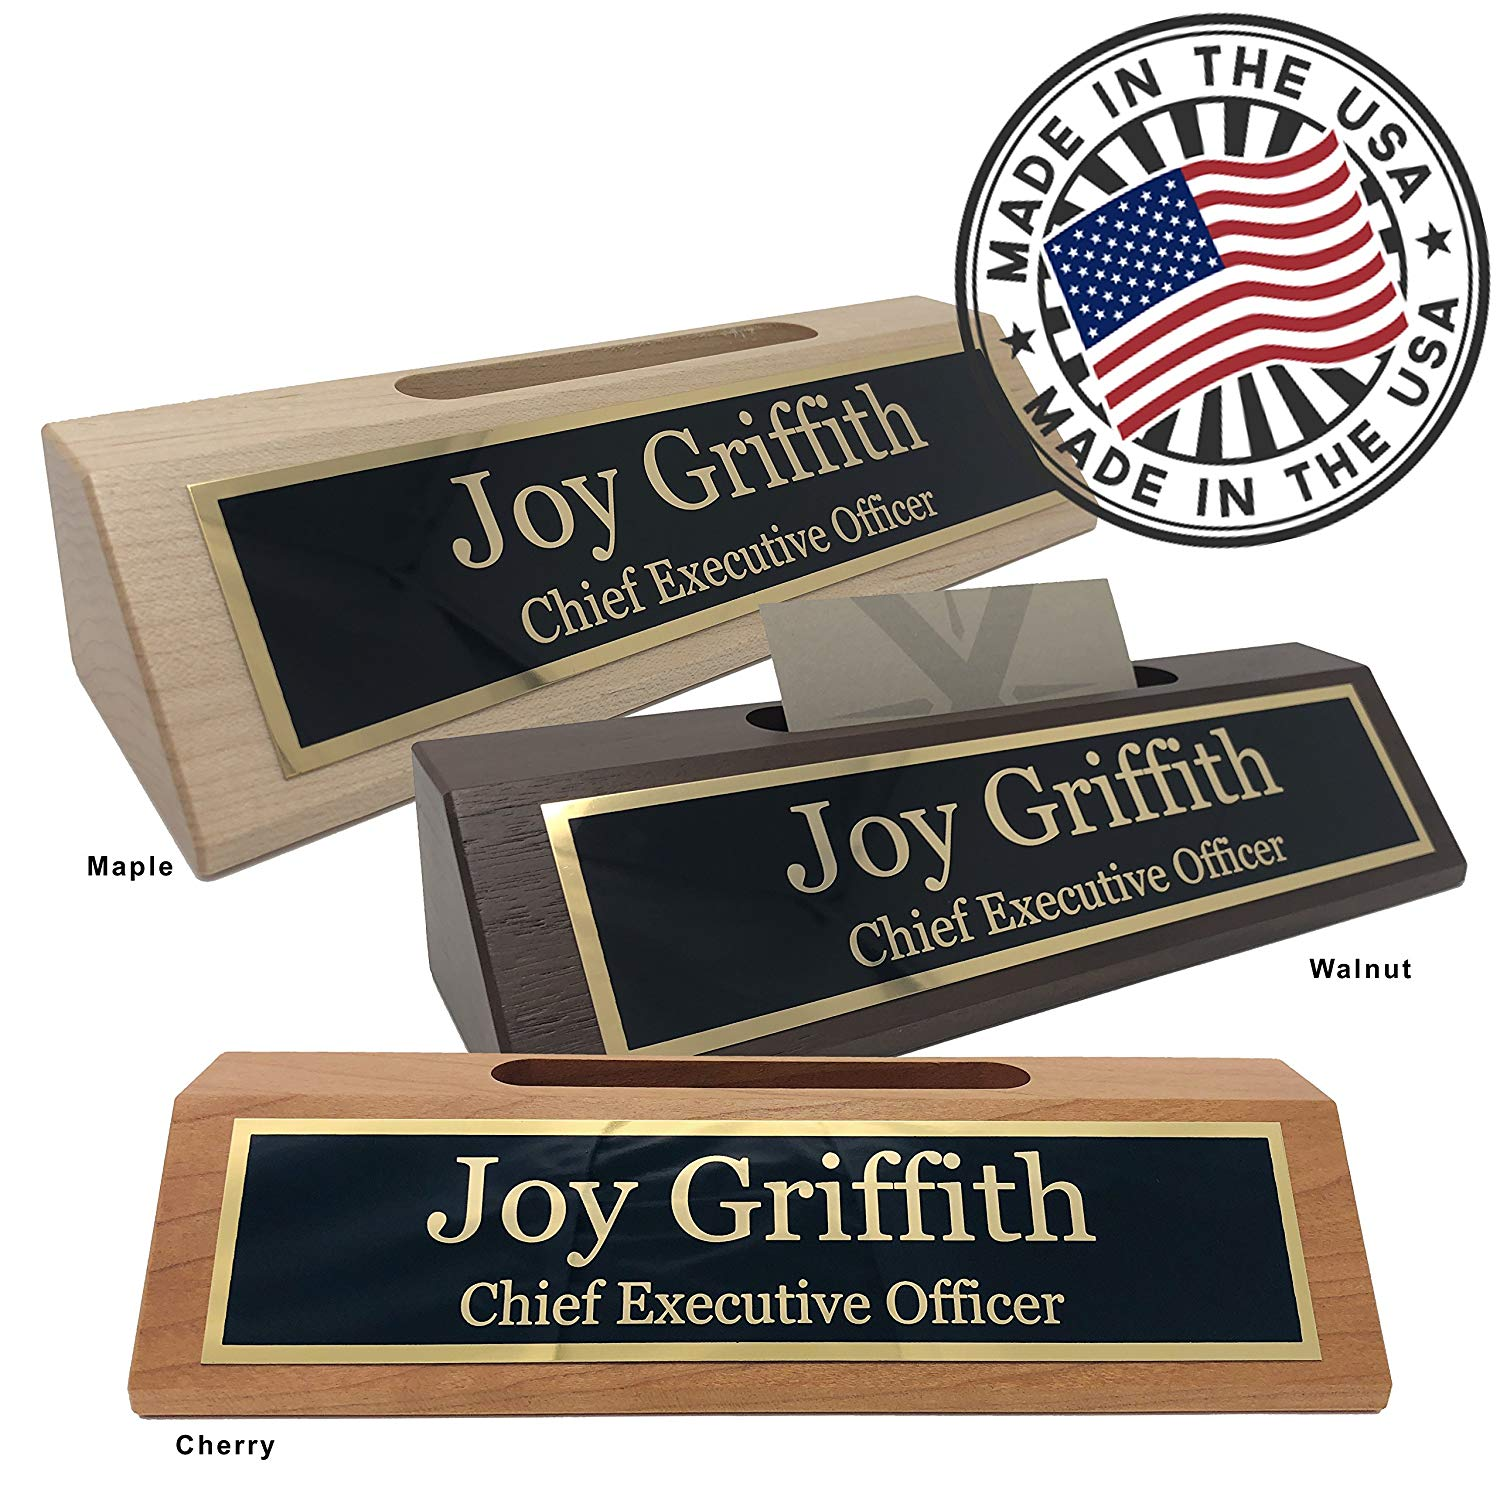 Personalized Business Desk Name Plate with Card Holder – Made in USA (Cherry Wood)